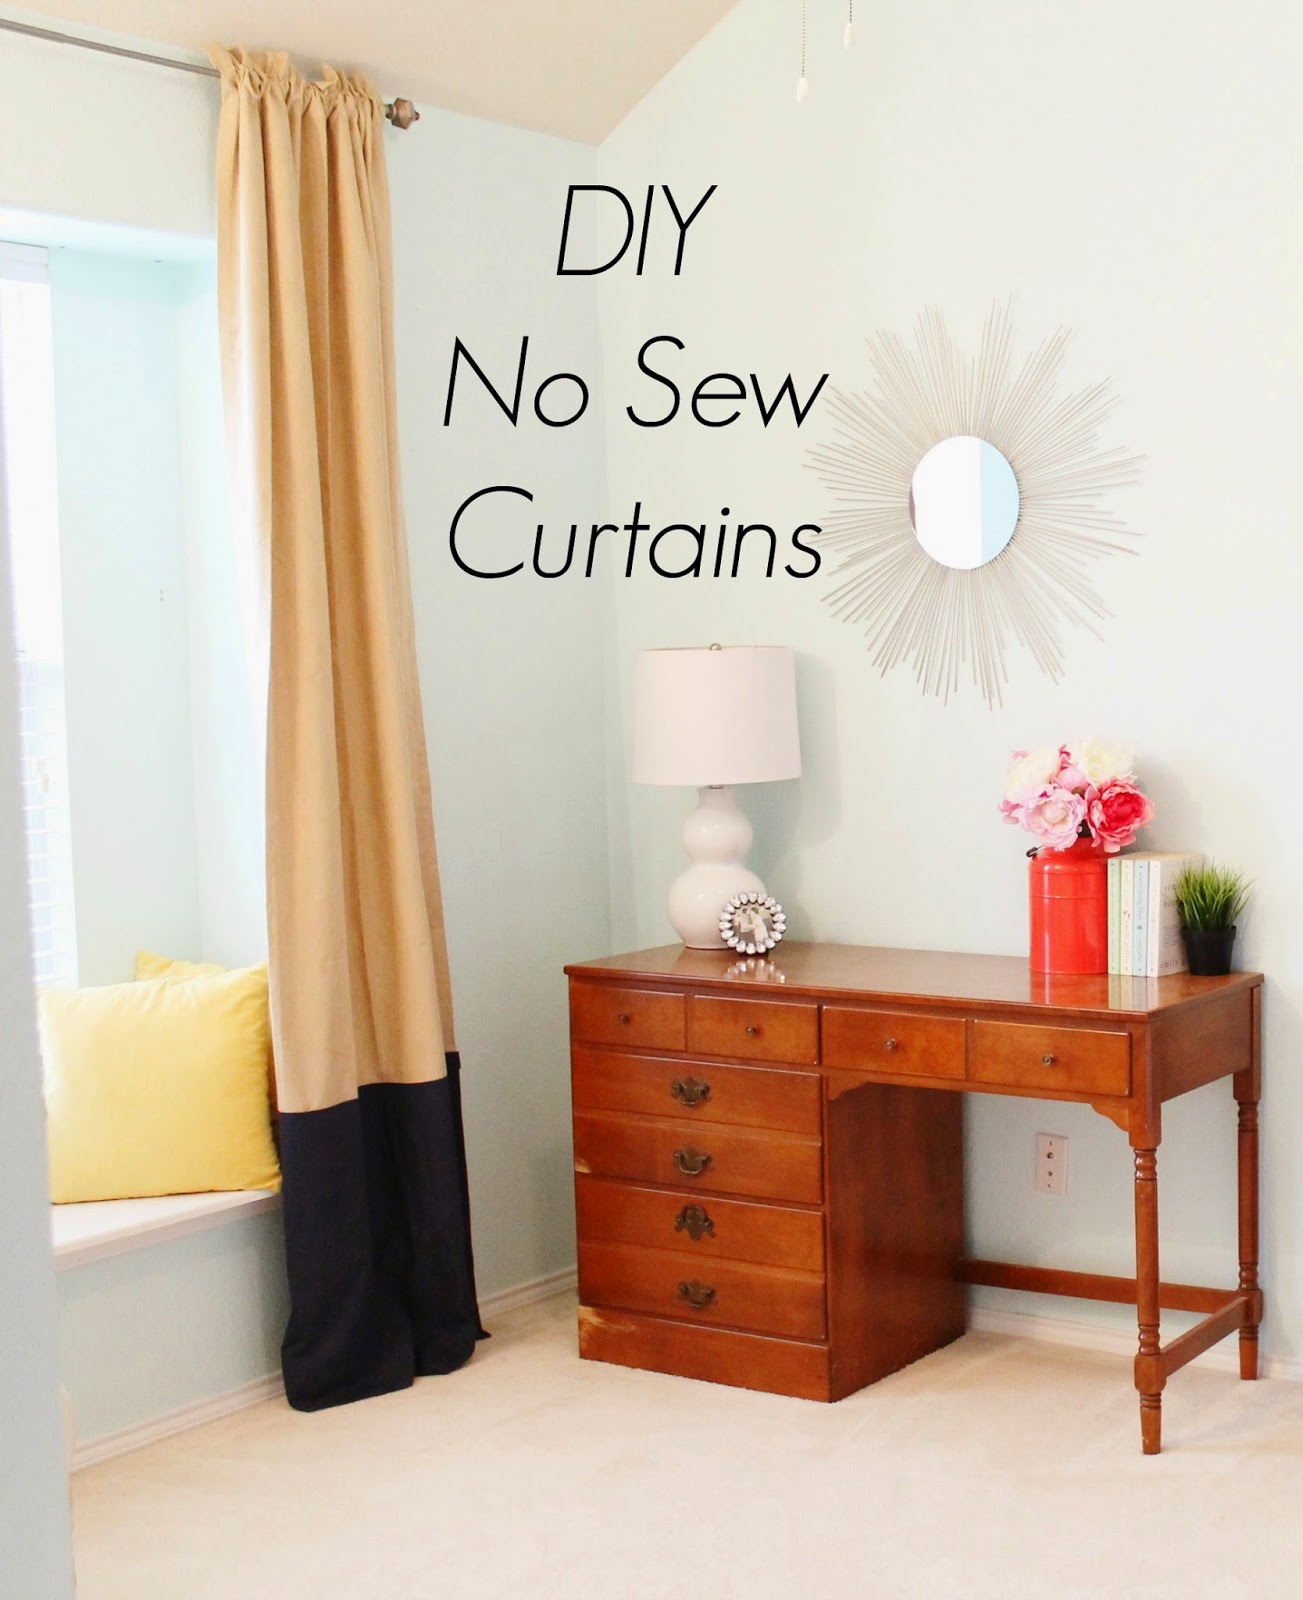 Tucker Up: DIY No Sew Curtains